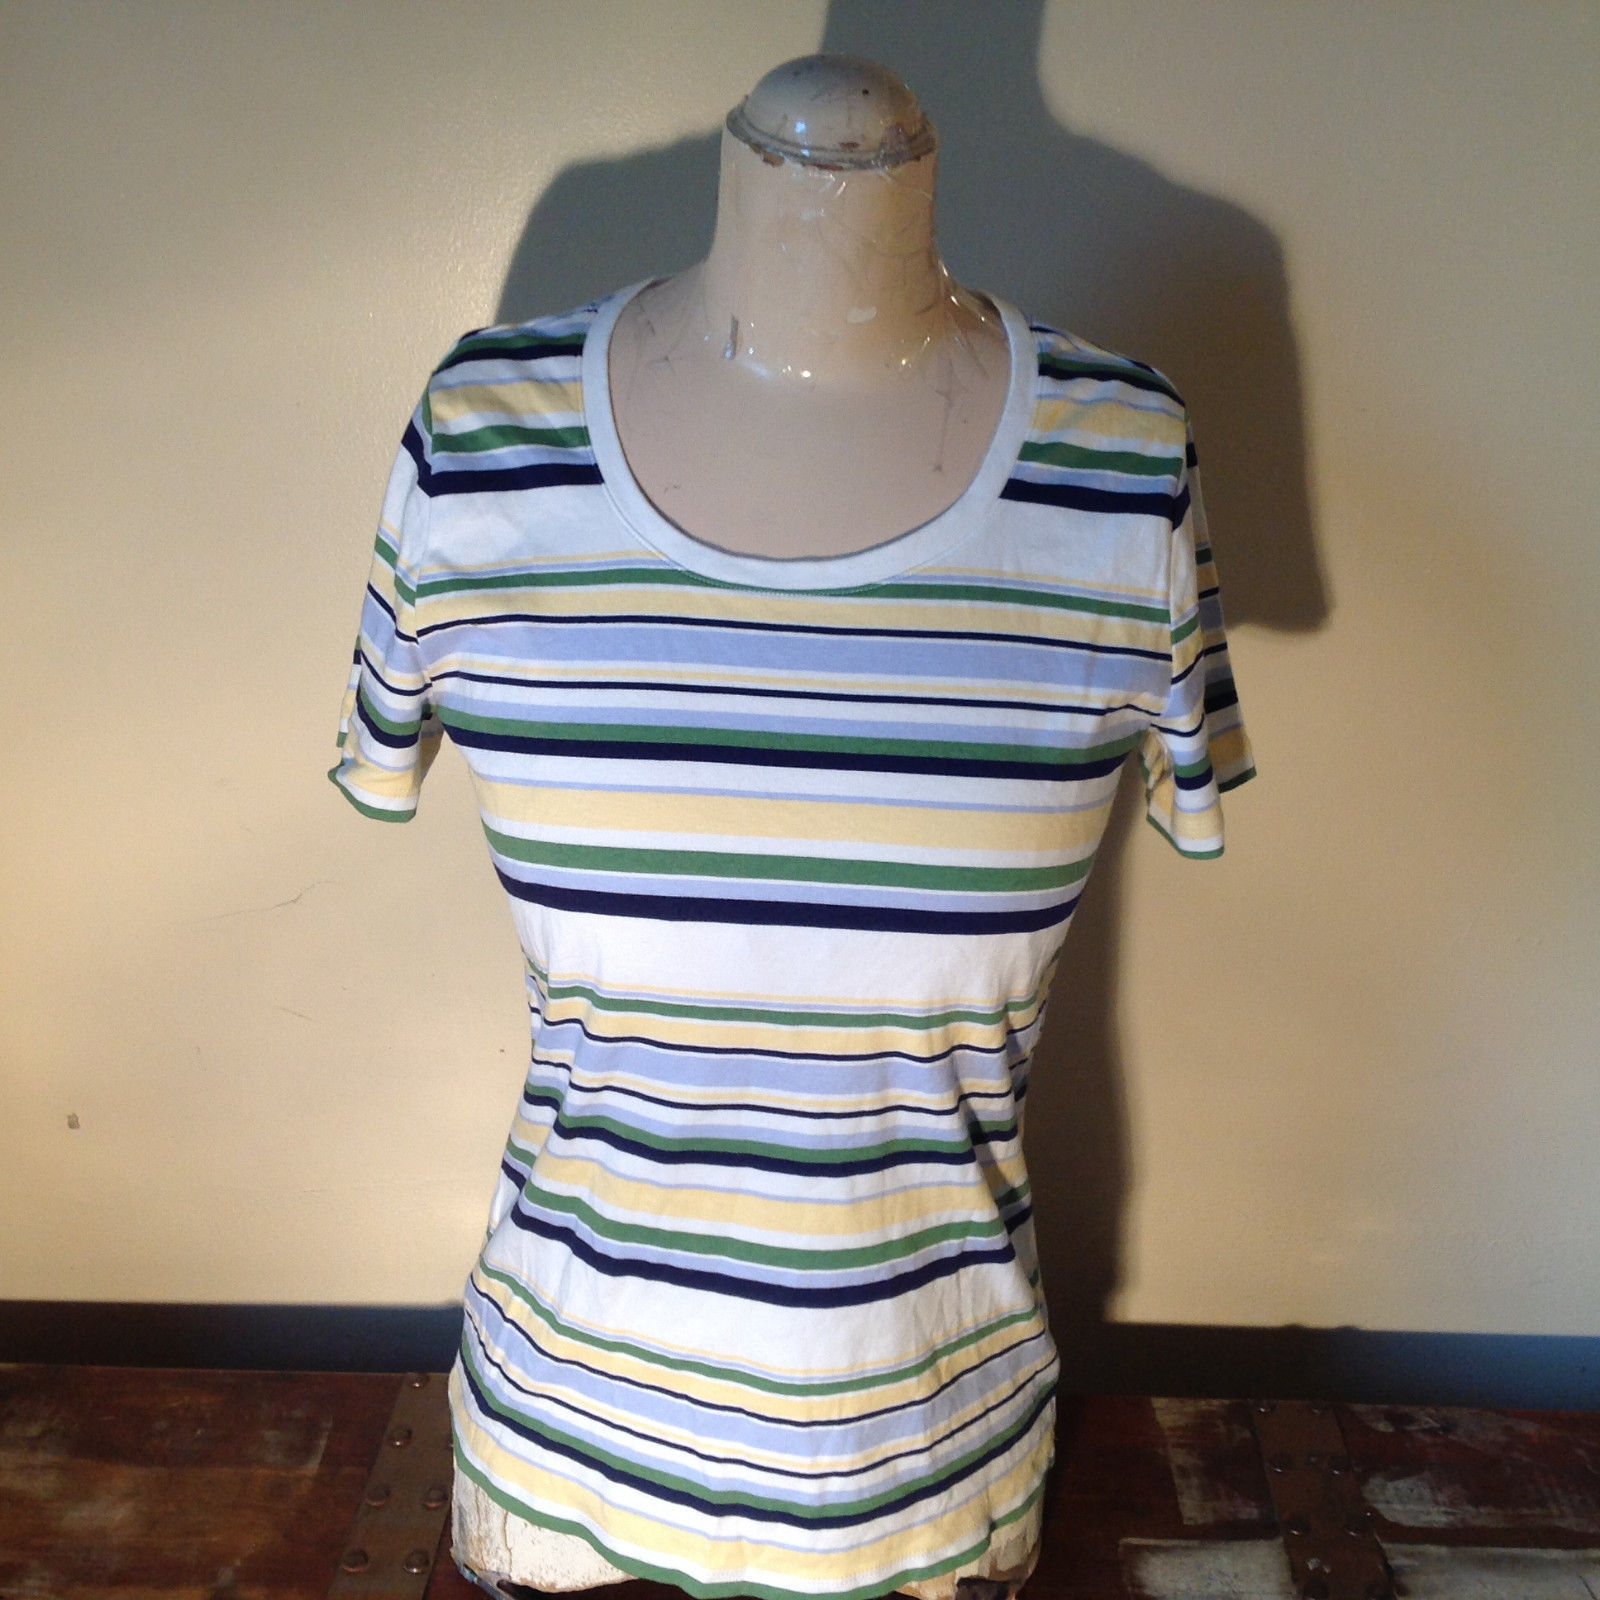 Short Sleeve White Stag 100 Percent Cotton Multicolored Striped Shirt Size M